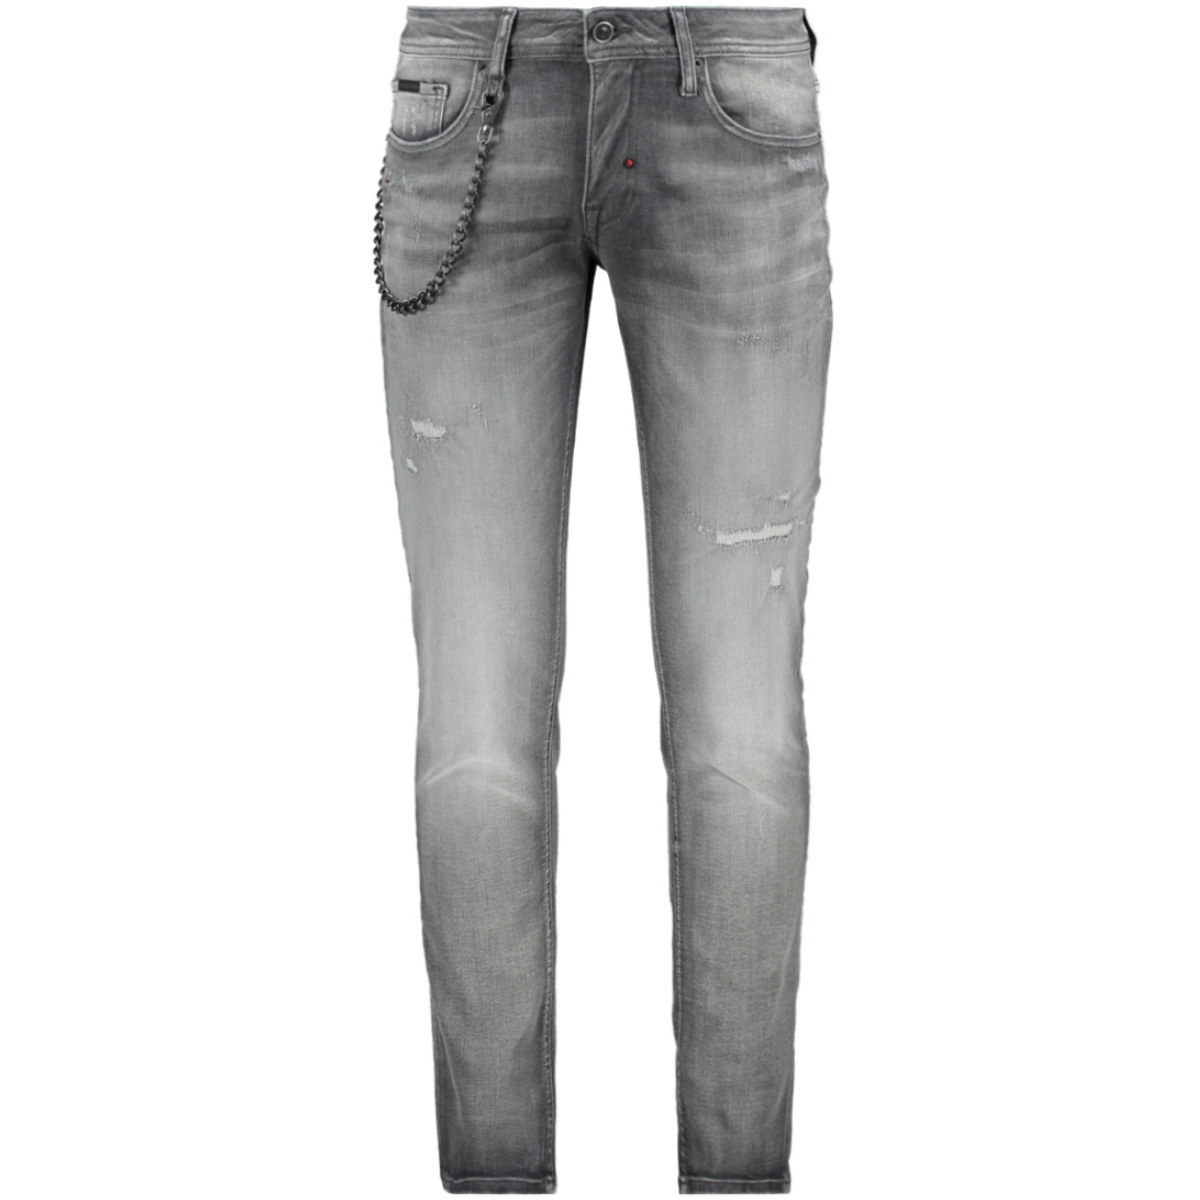 jeans tapered iggy mmdt00245 antony morato jeans 9001 greey steel